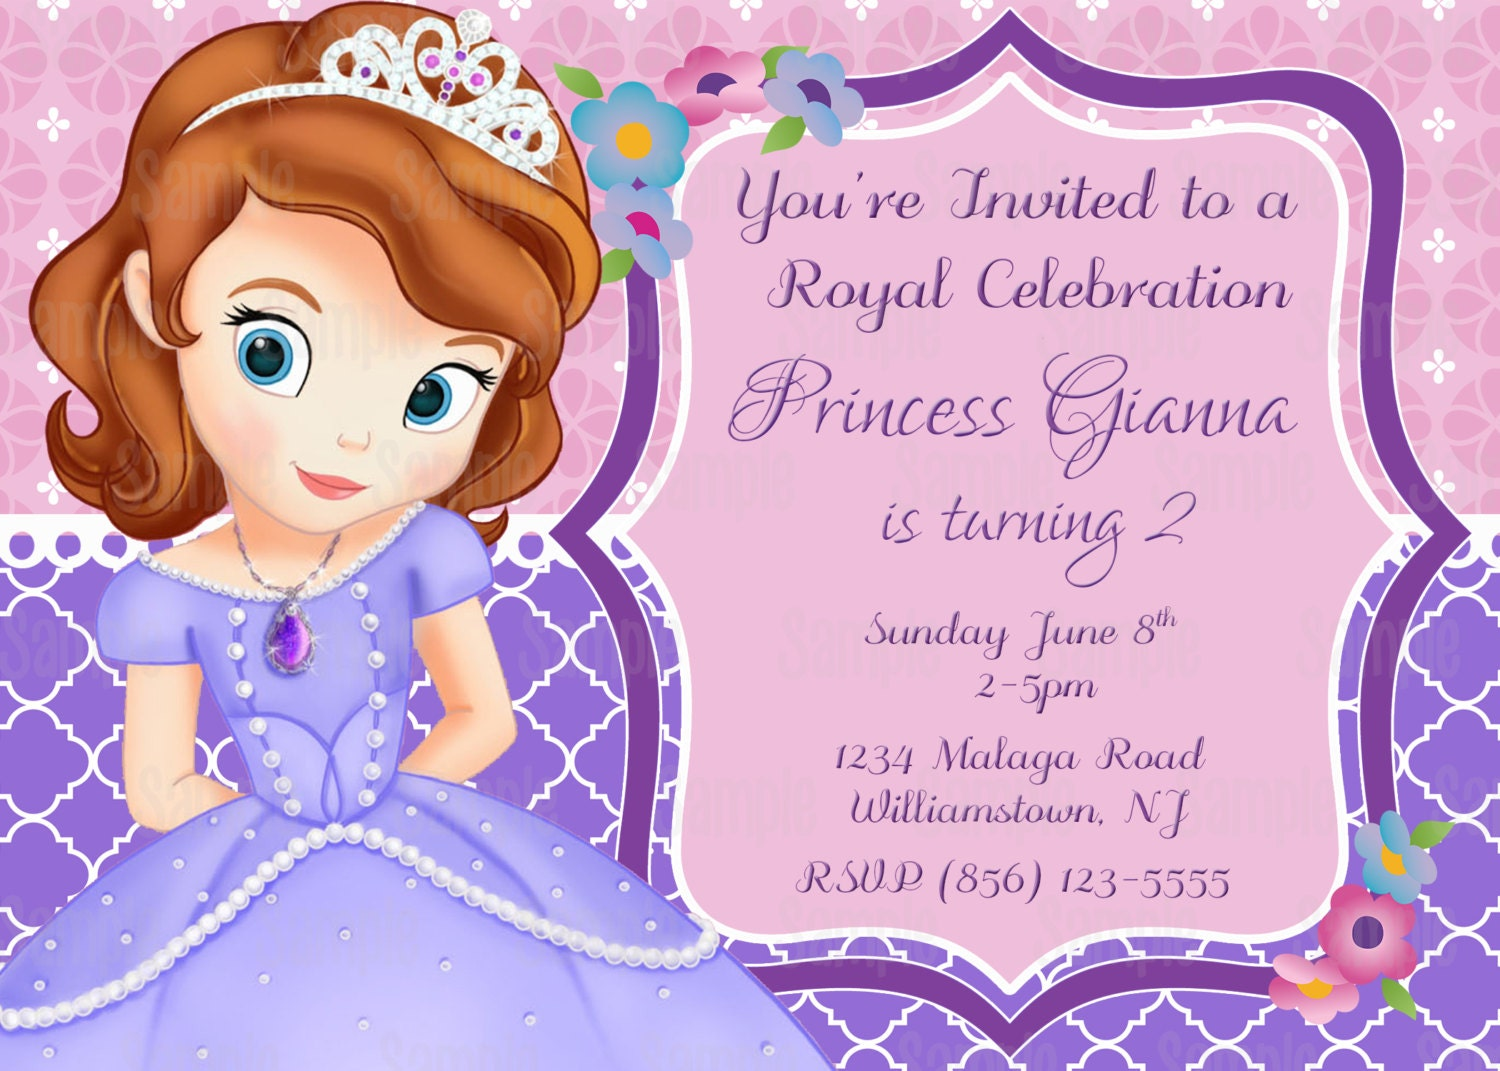 Printable sofia the first birthday party invitation plus free printable sofia the first birthday party invitation plus free blank matching printable thank you card stopboris Images